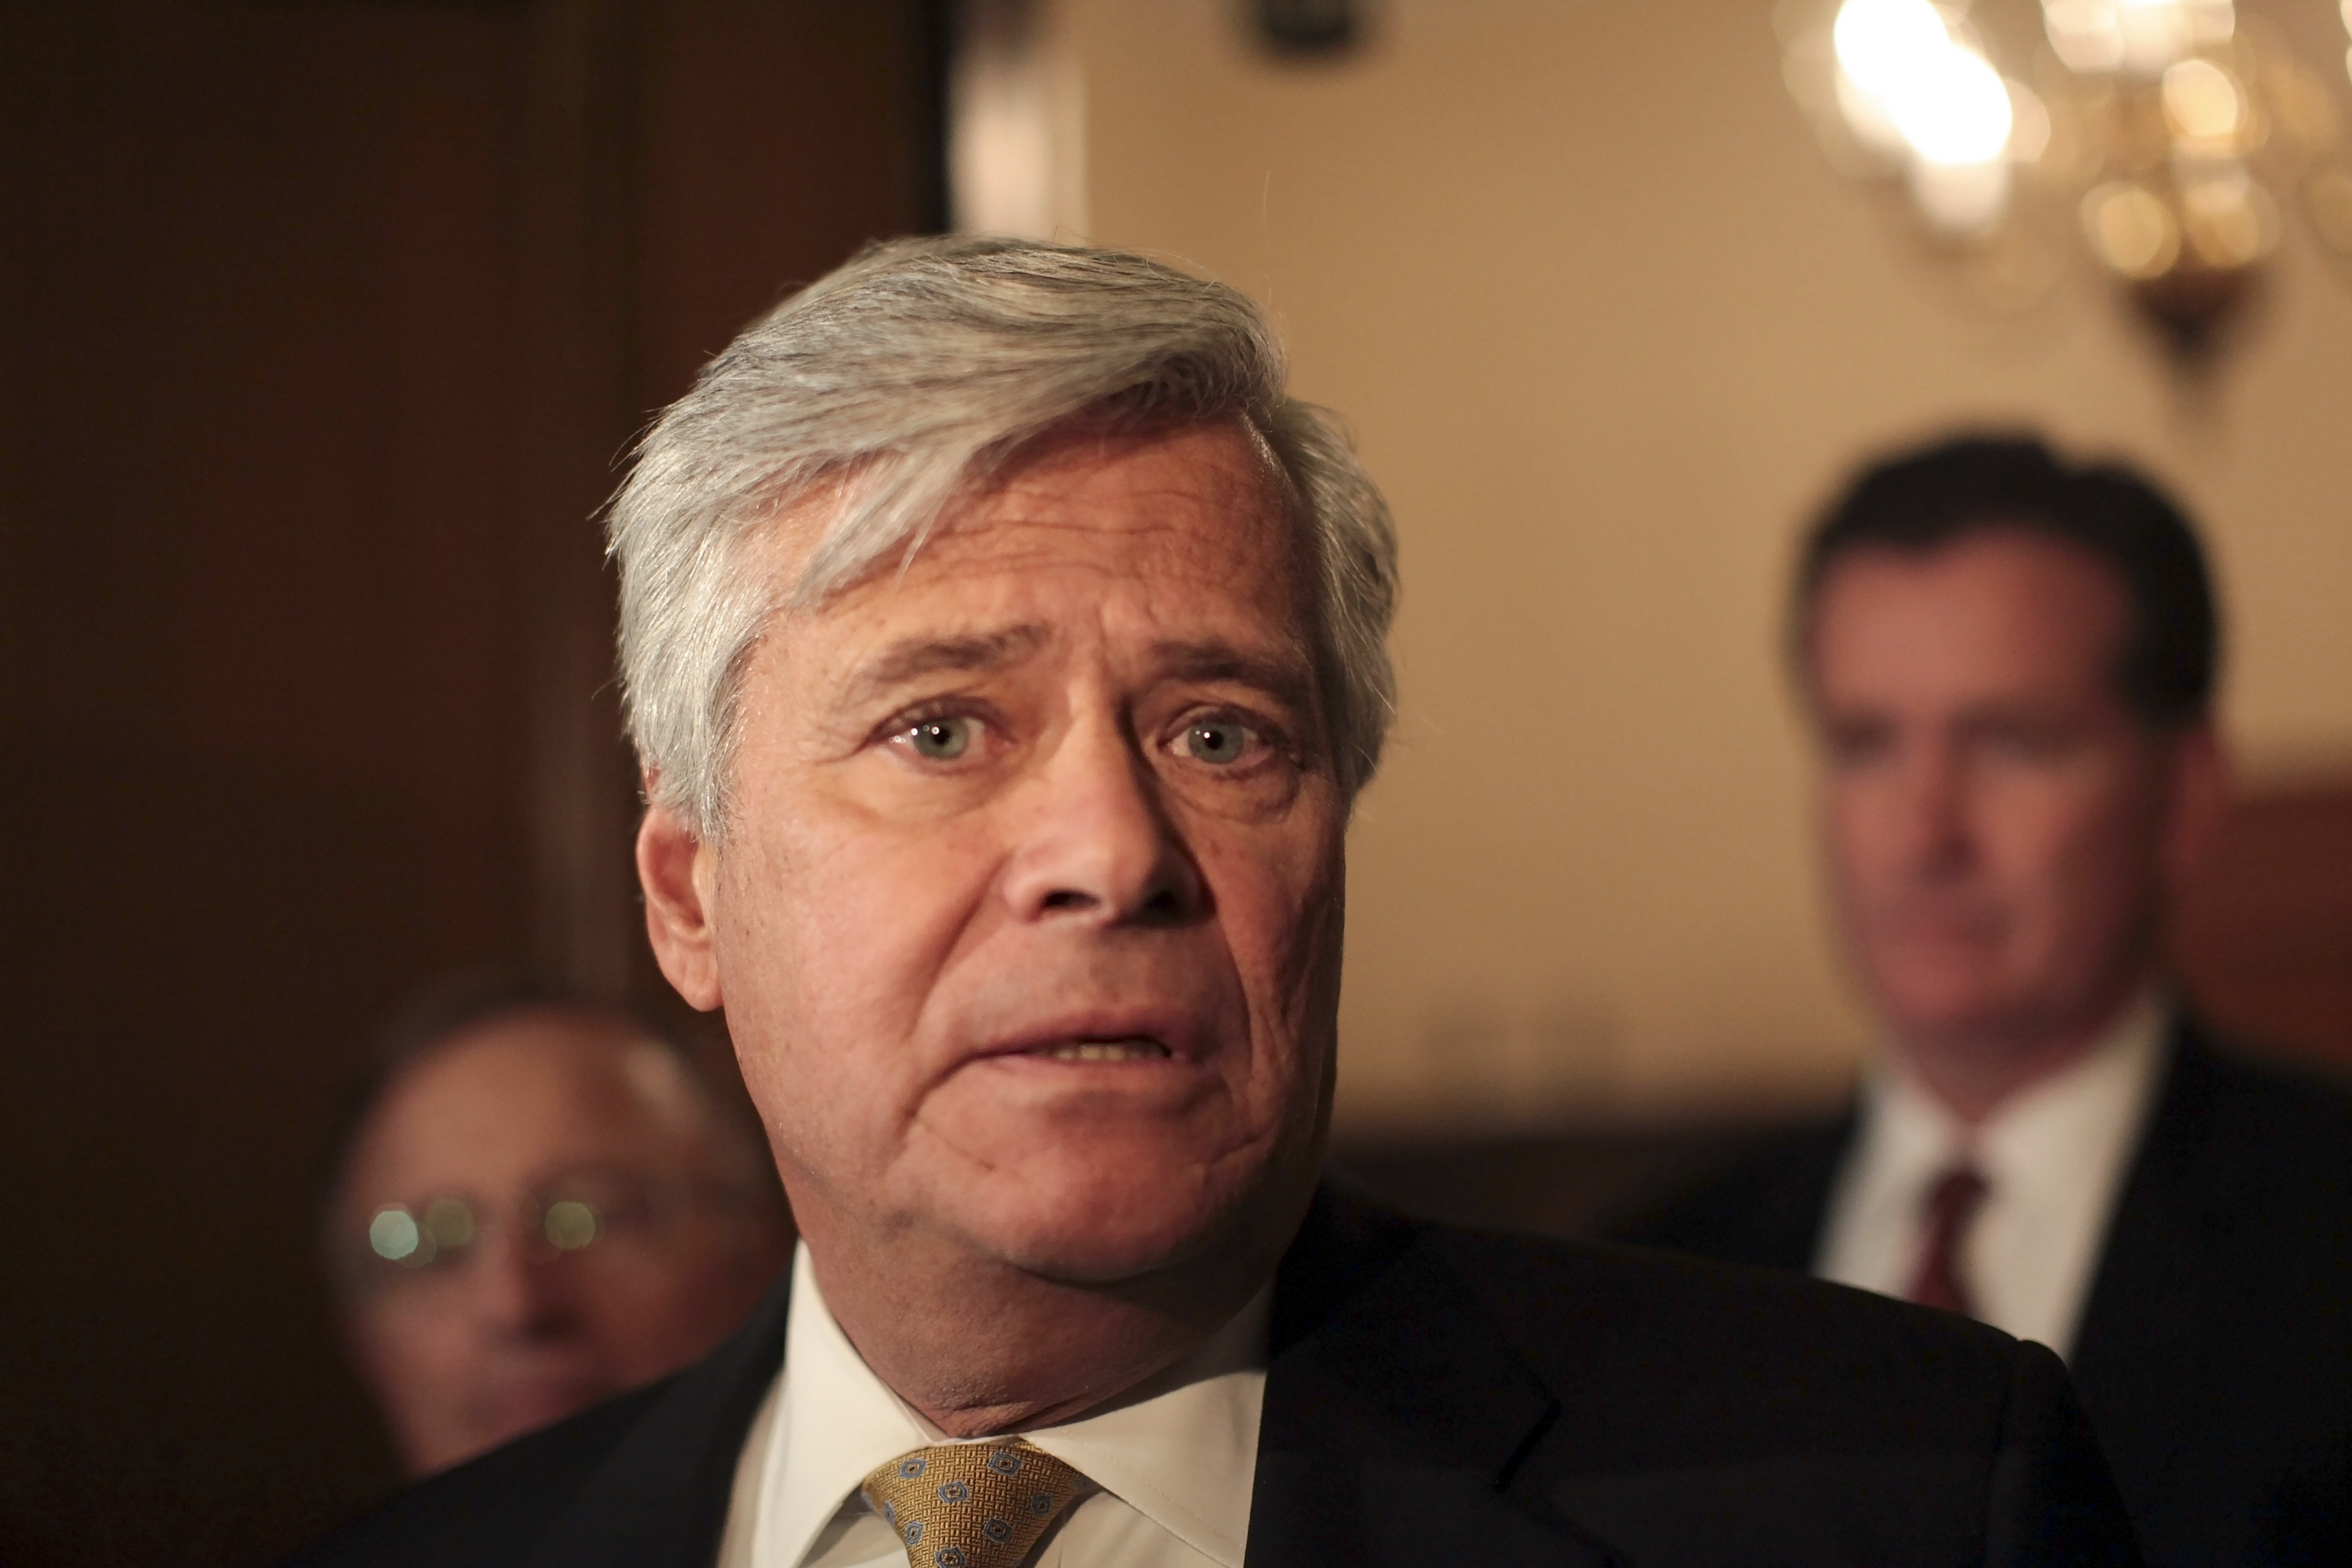 State Senate Majority Leader Dean Skelos and his son Adam are focus of federal corruption probe. (New York Times file photo)